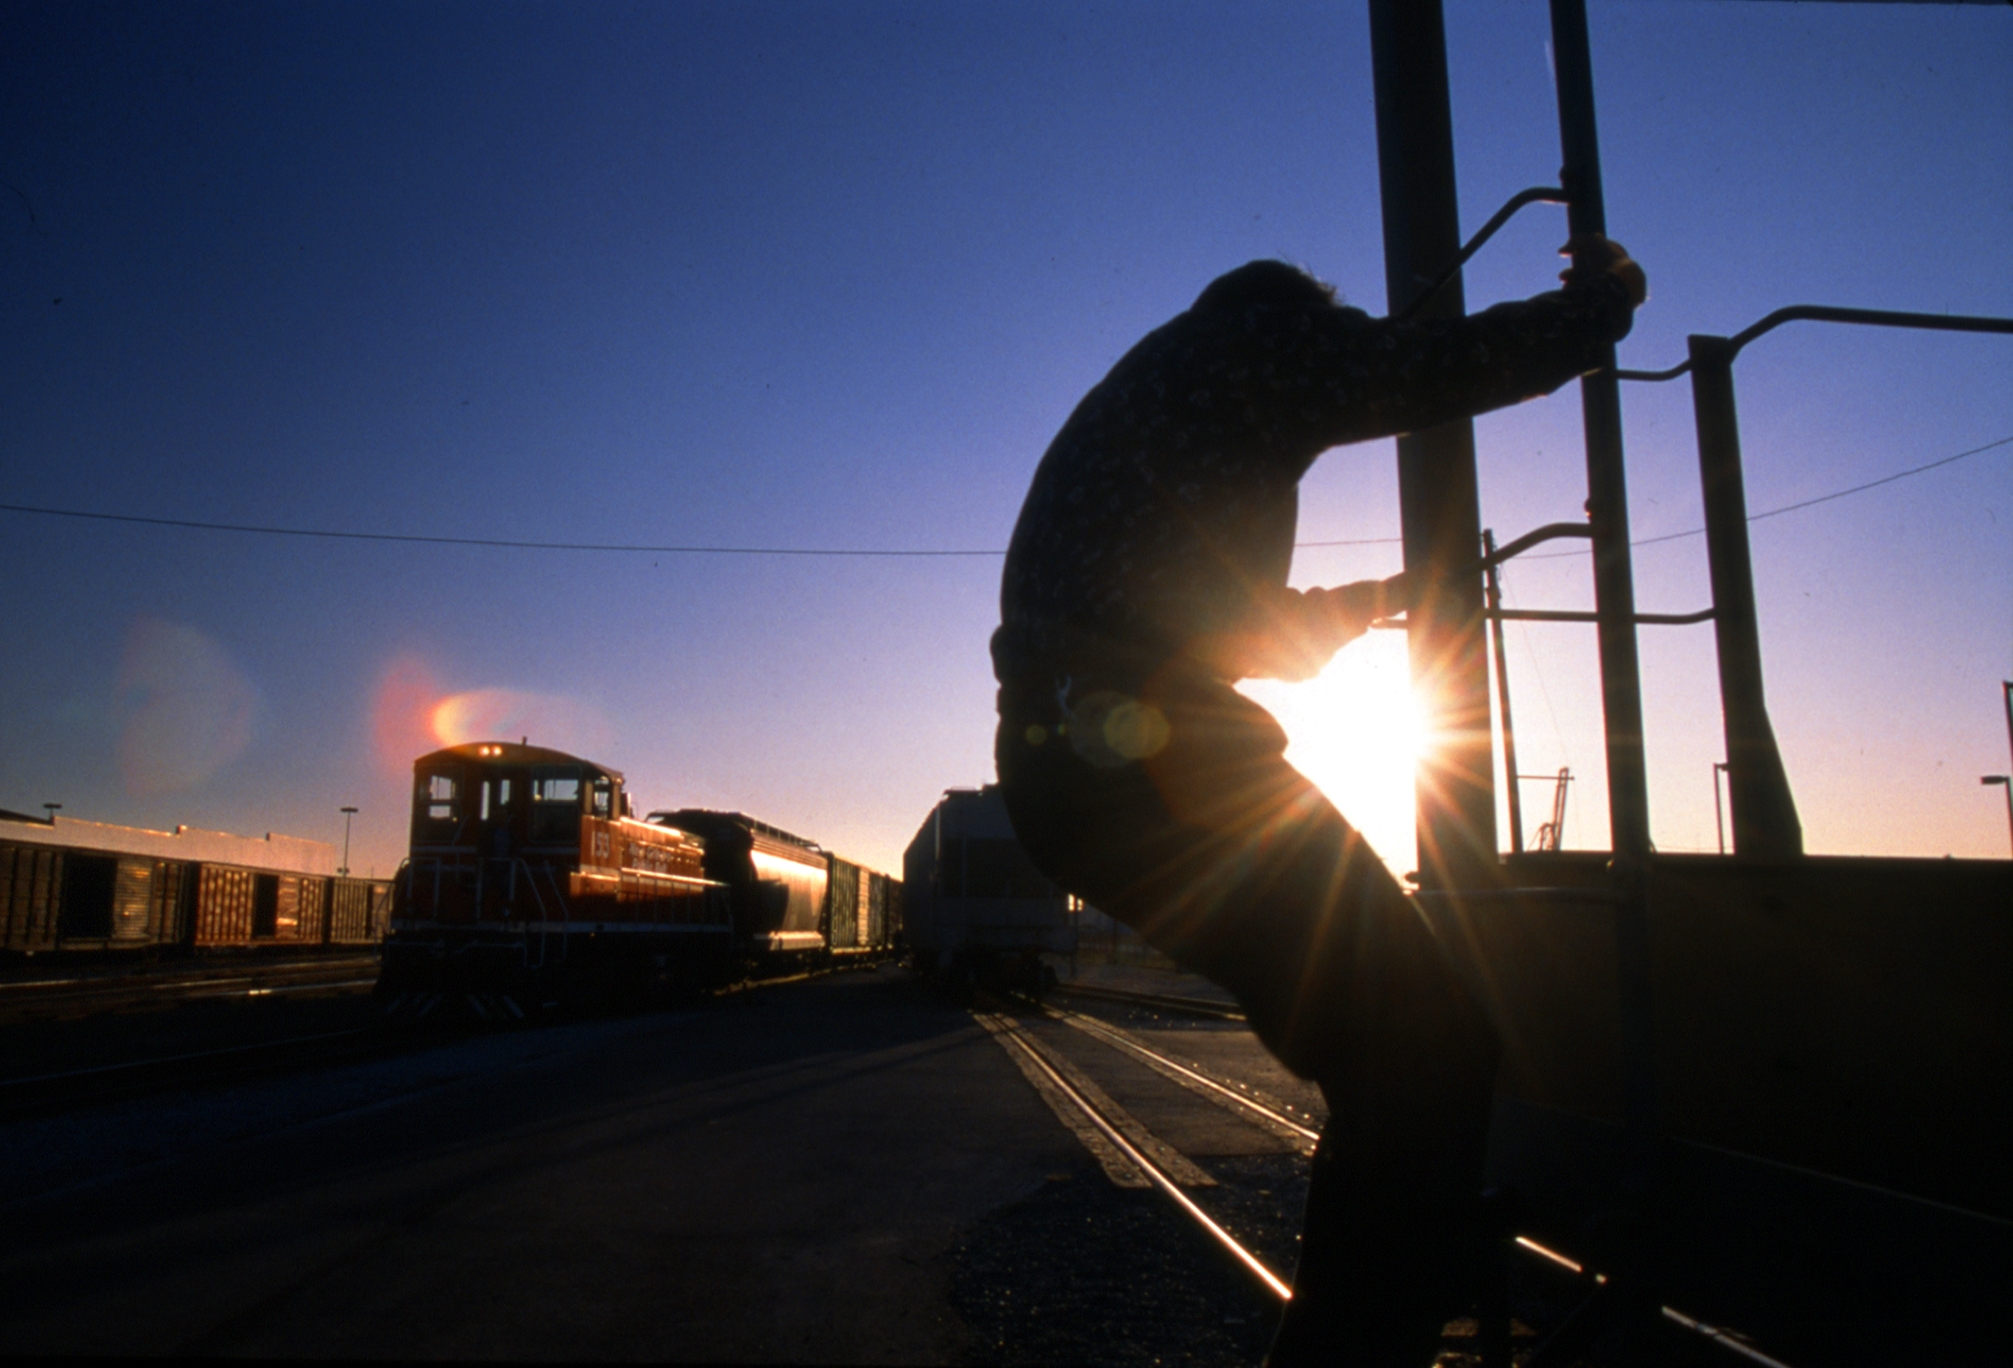 Railroad Worker at Sunset